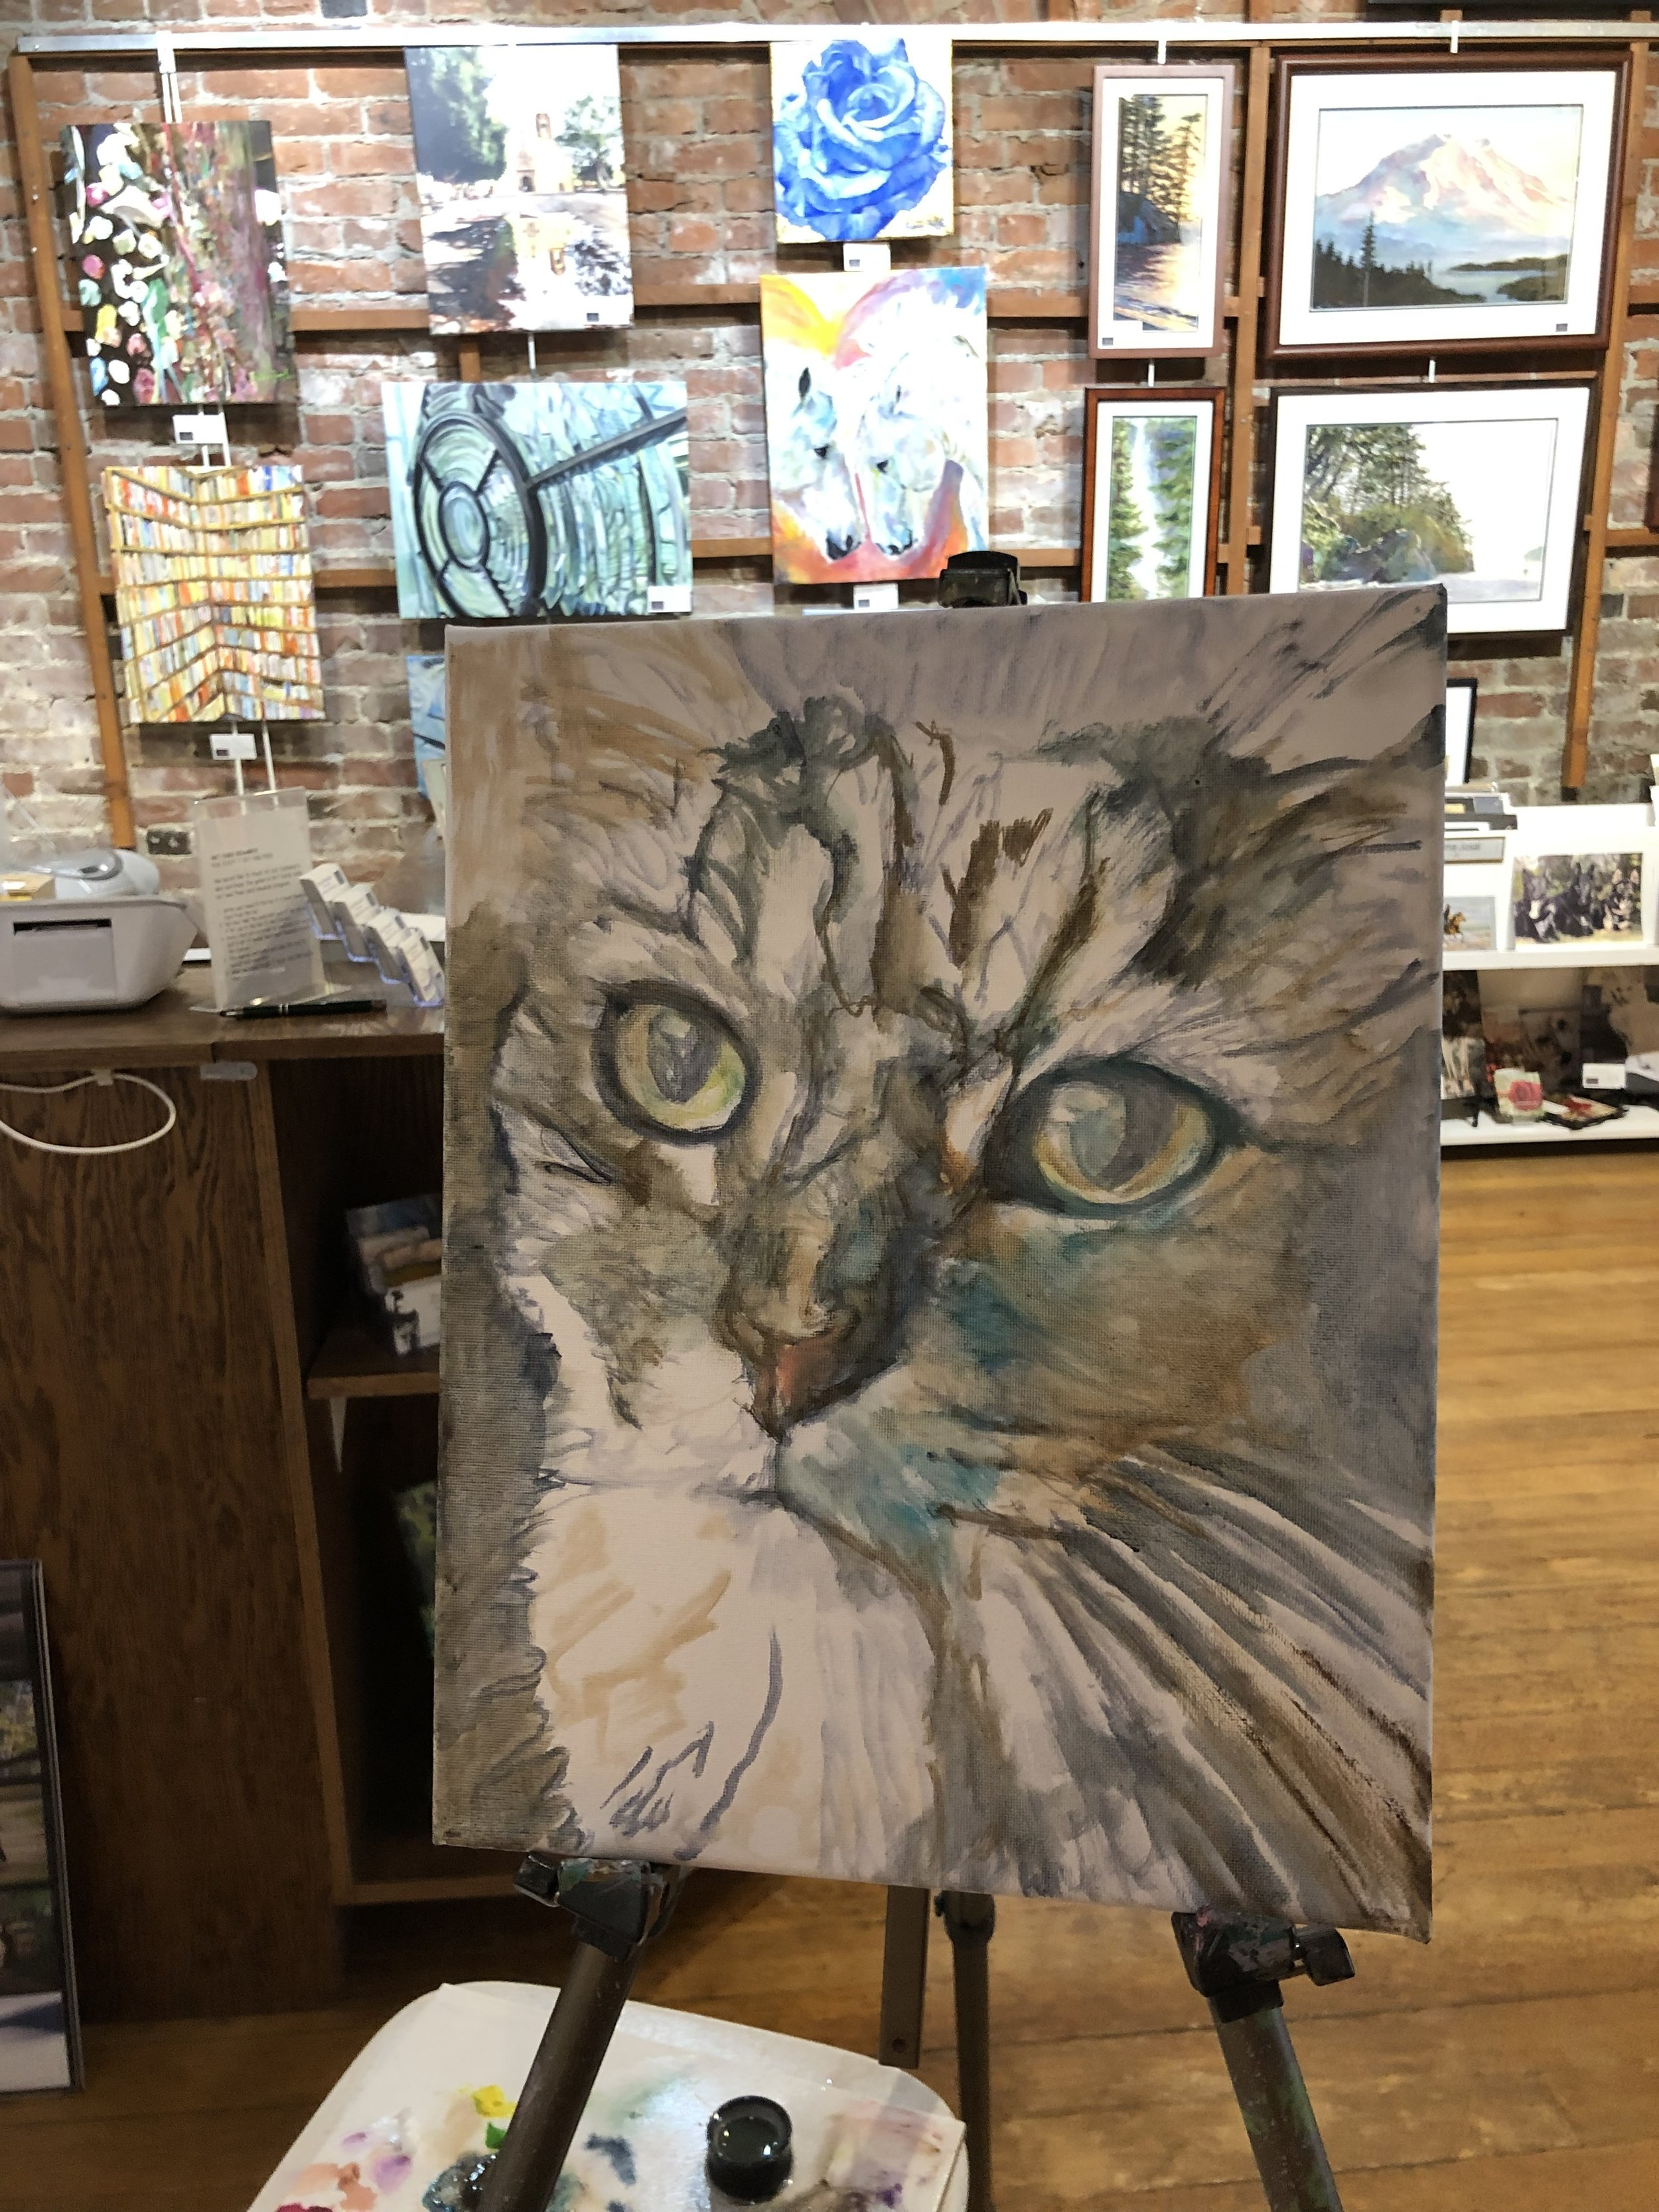 Layer 1 for my friend Sara. She lost her wonderful cat, Finnegan recently.